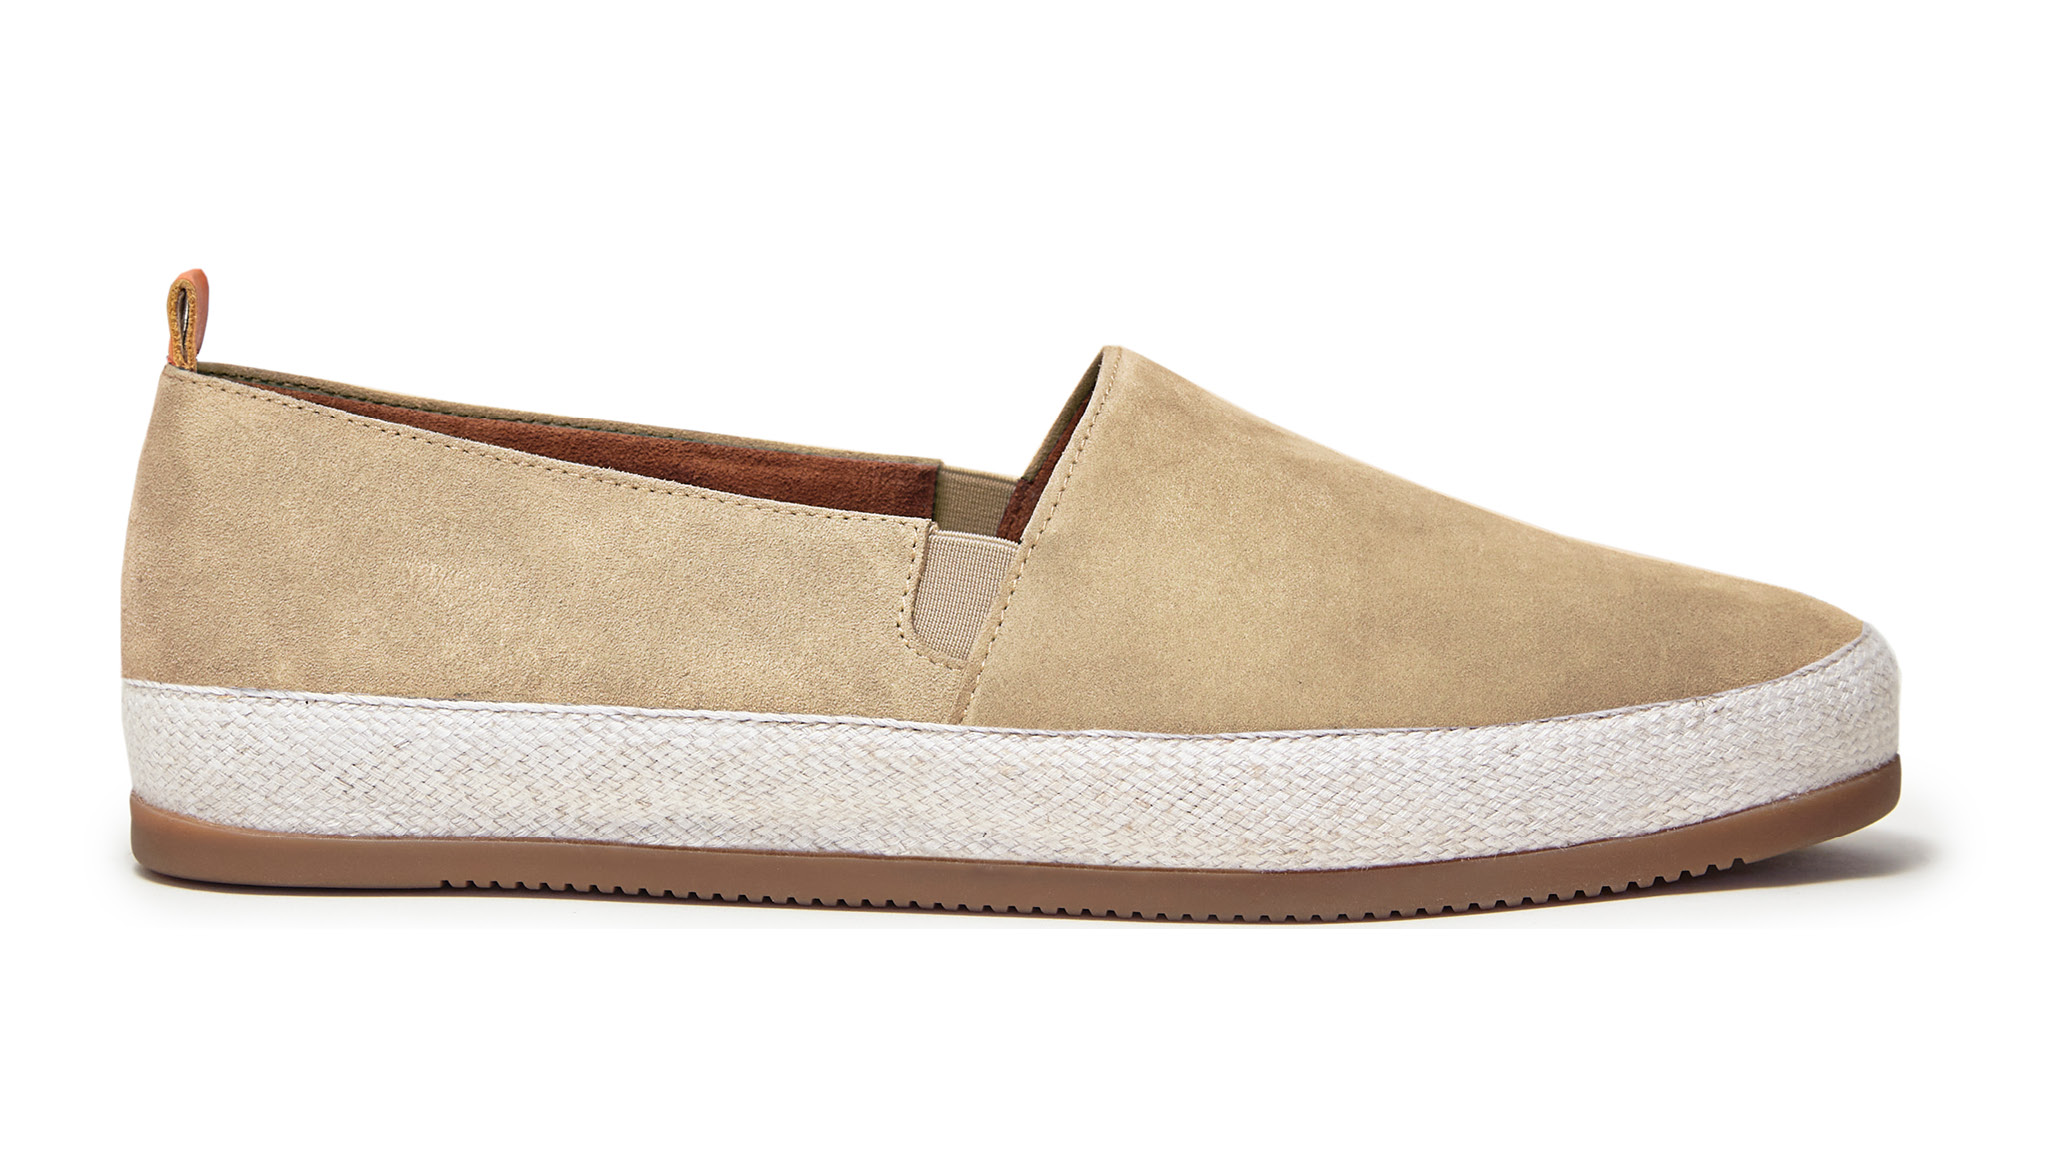 Suede Tan Sand Espadrille | MULO shoes